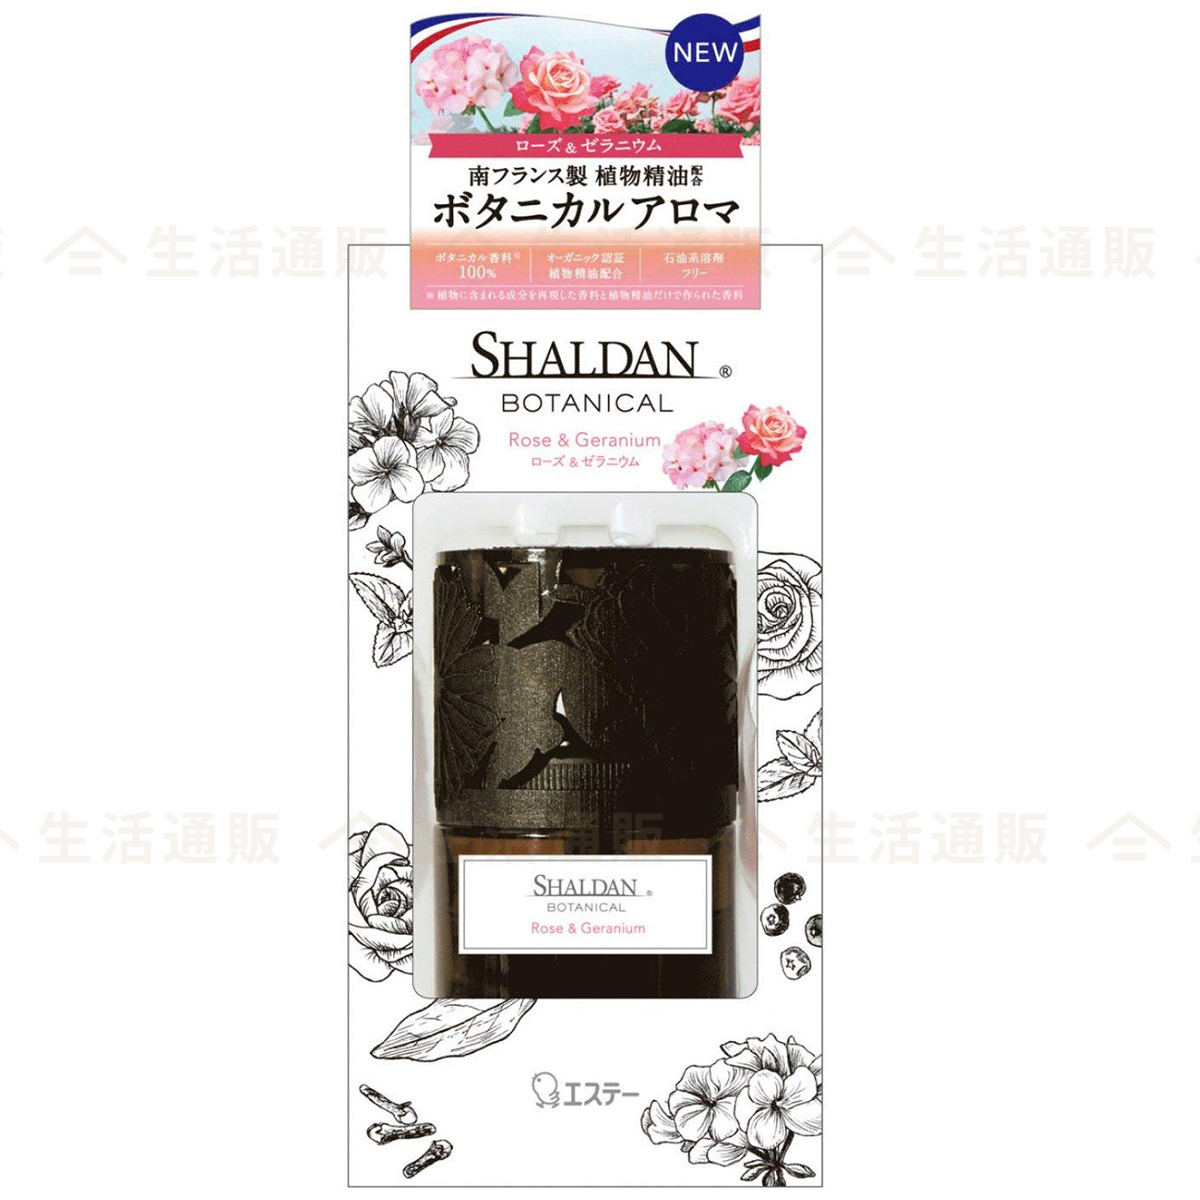 SHALDAN BOTANICAL Body Rose & Geranium 25ml